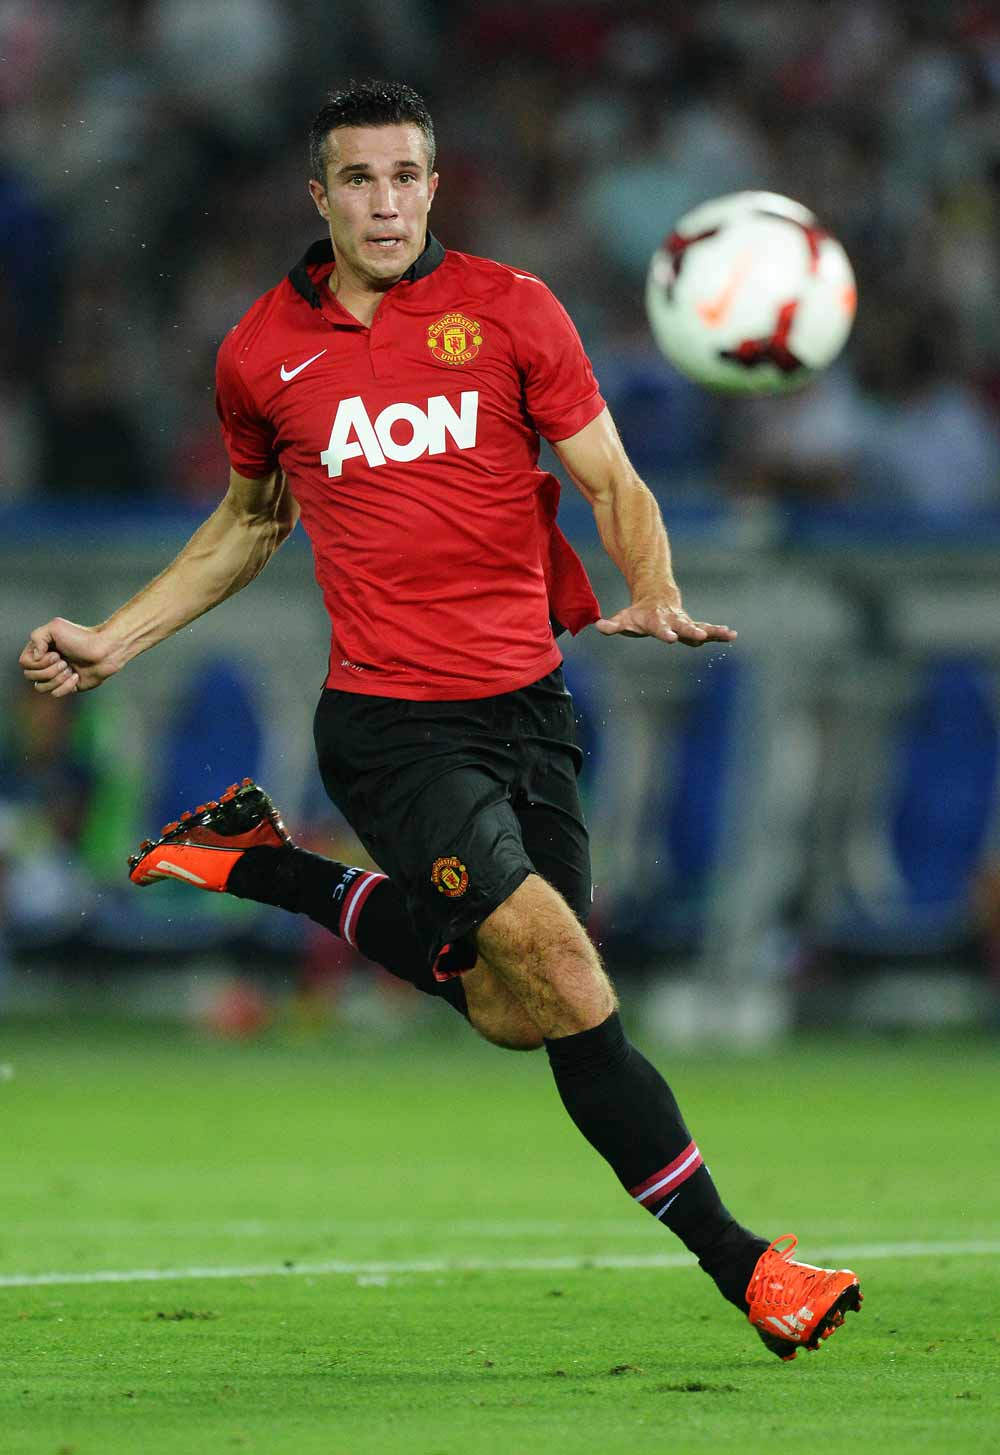 Van Persie and six other Premier League stars in Netherlands Euro 2012 squad